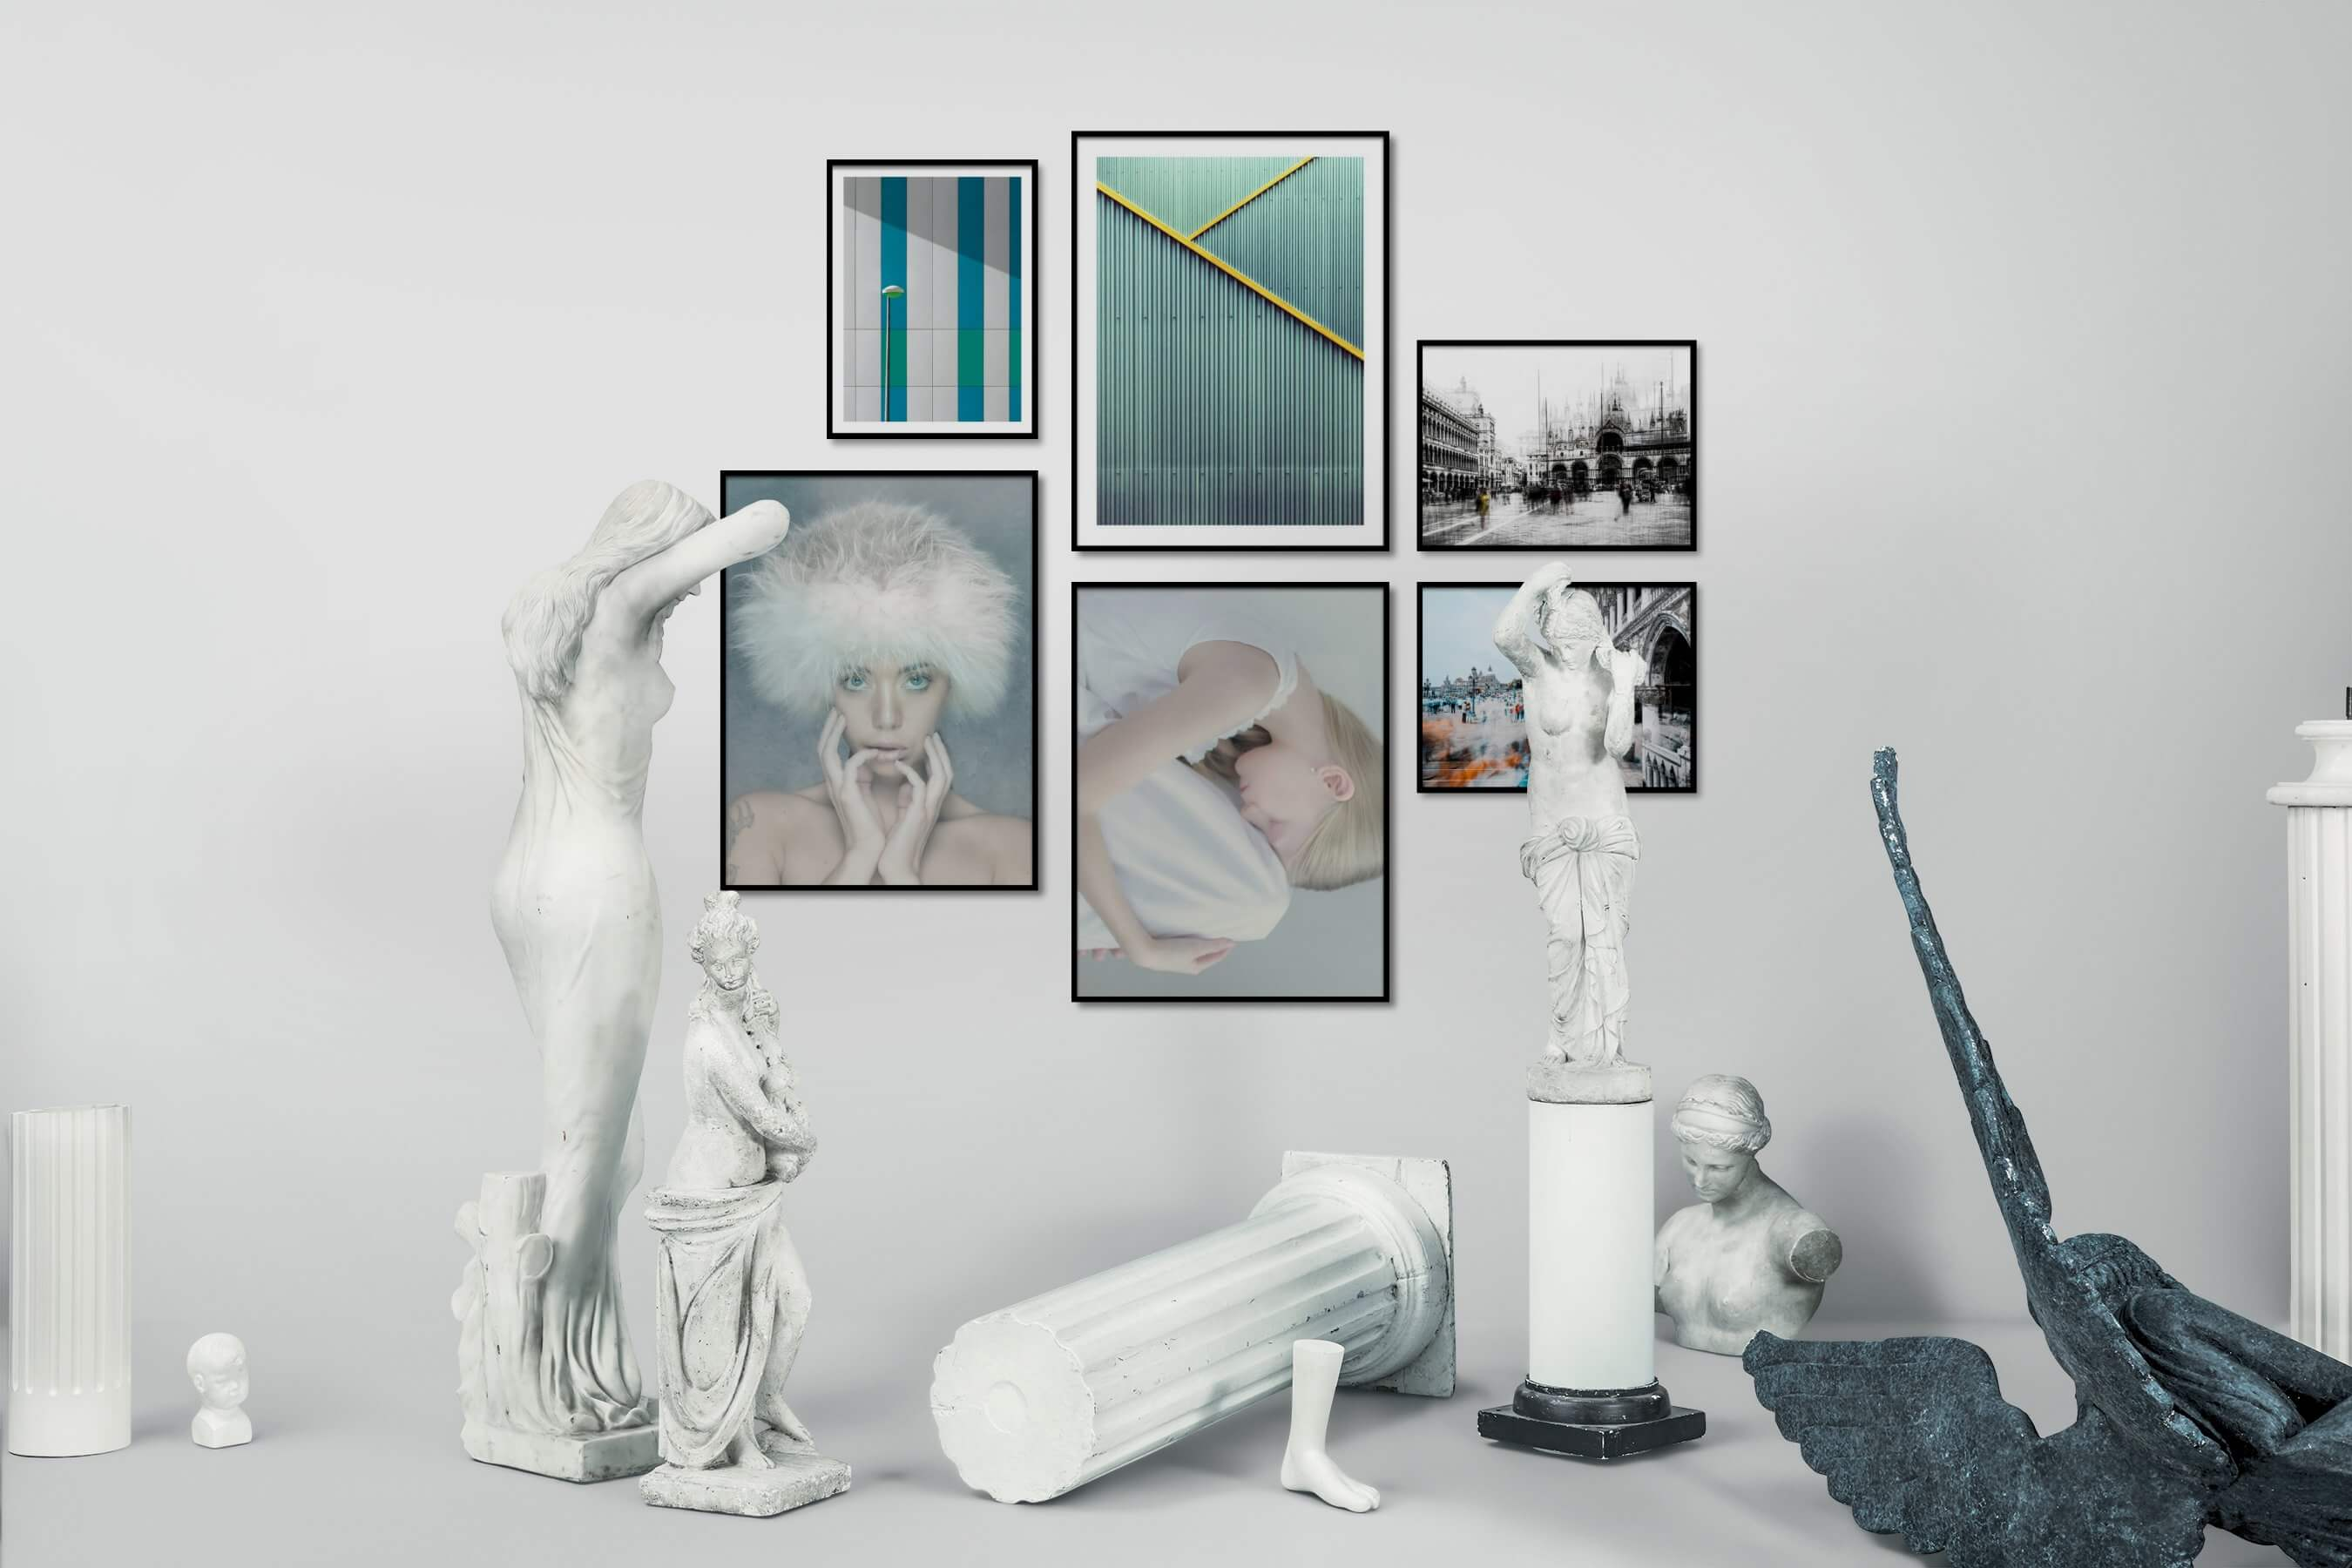 Gallery wall idea with six framed pictures arranged on a wall depicting For the Moderate, Fashion & Beauty, For the Maximalist, and City Life